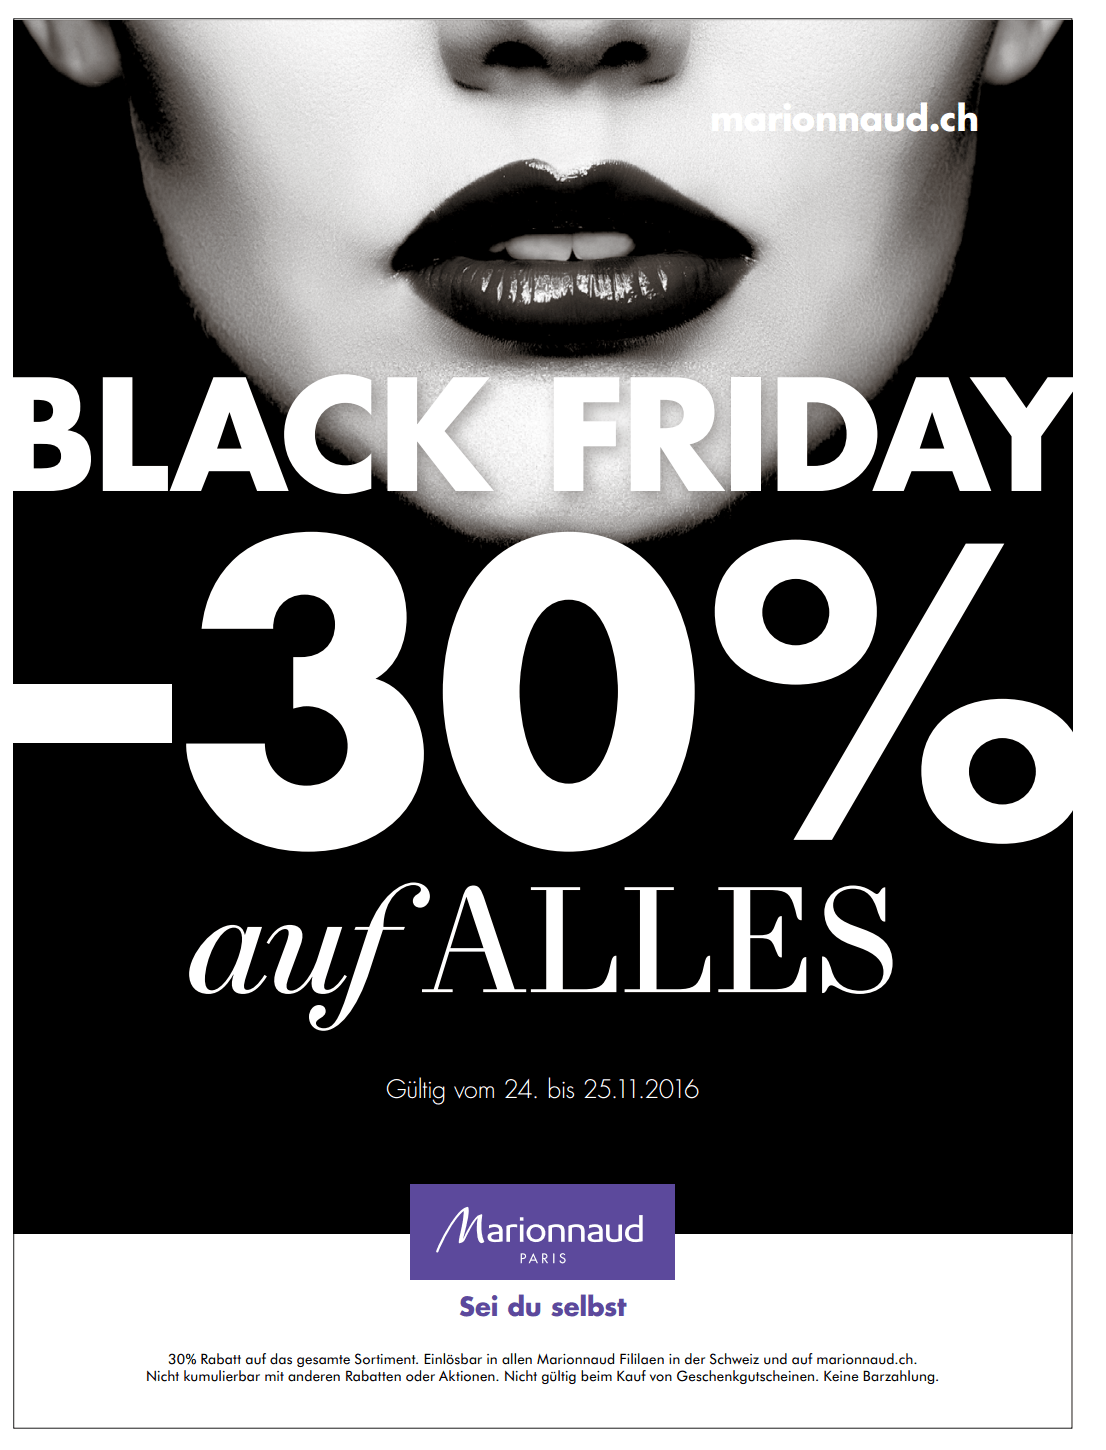 Black Friday Angebot Marionnaud Black Friday 2019 Alle Infos Gutscheincodes